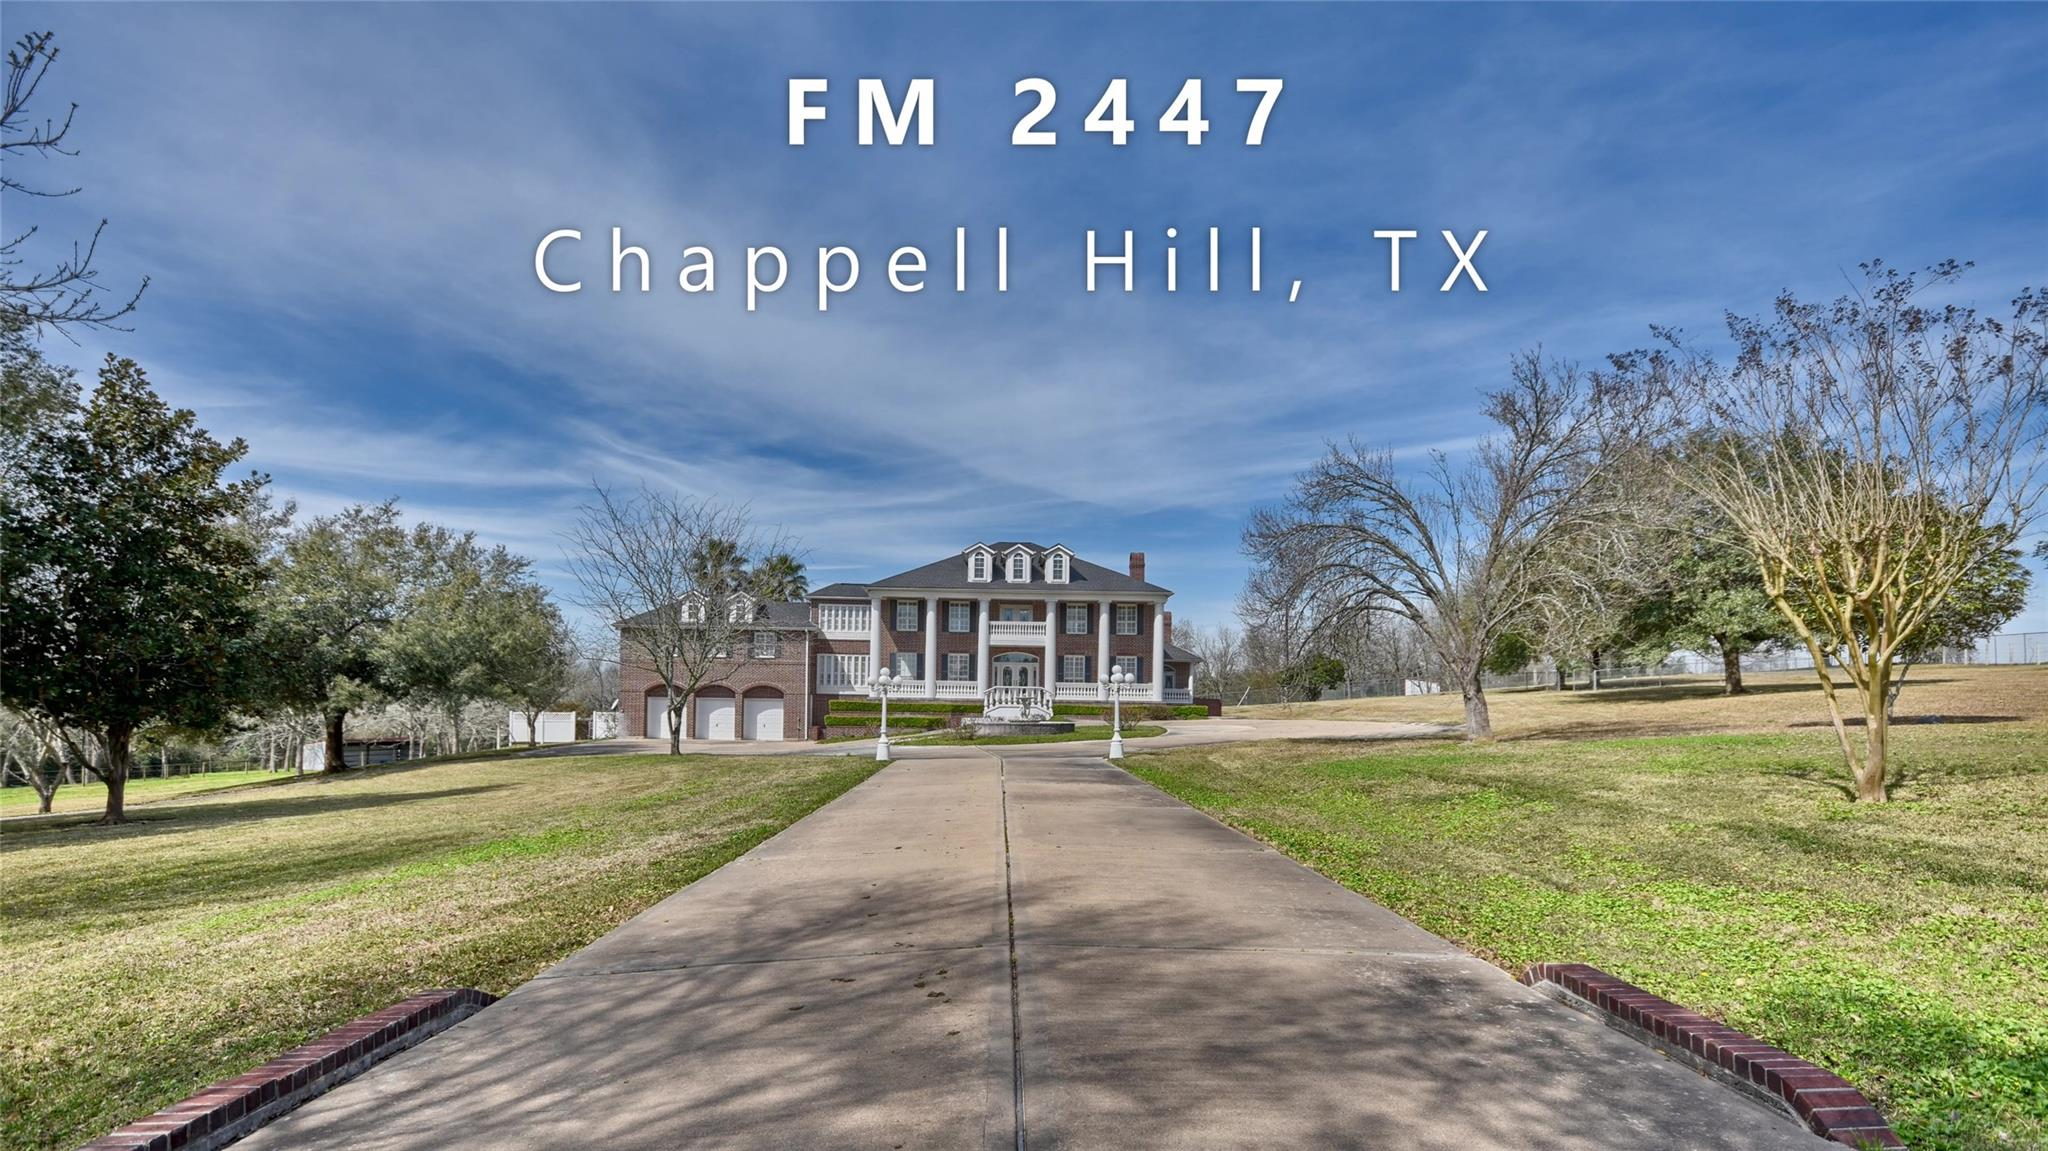 10909 FM 2447 E Property Photo - Chappell Hill, TX real estate listing